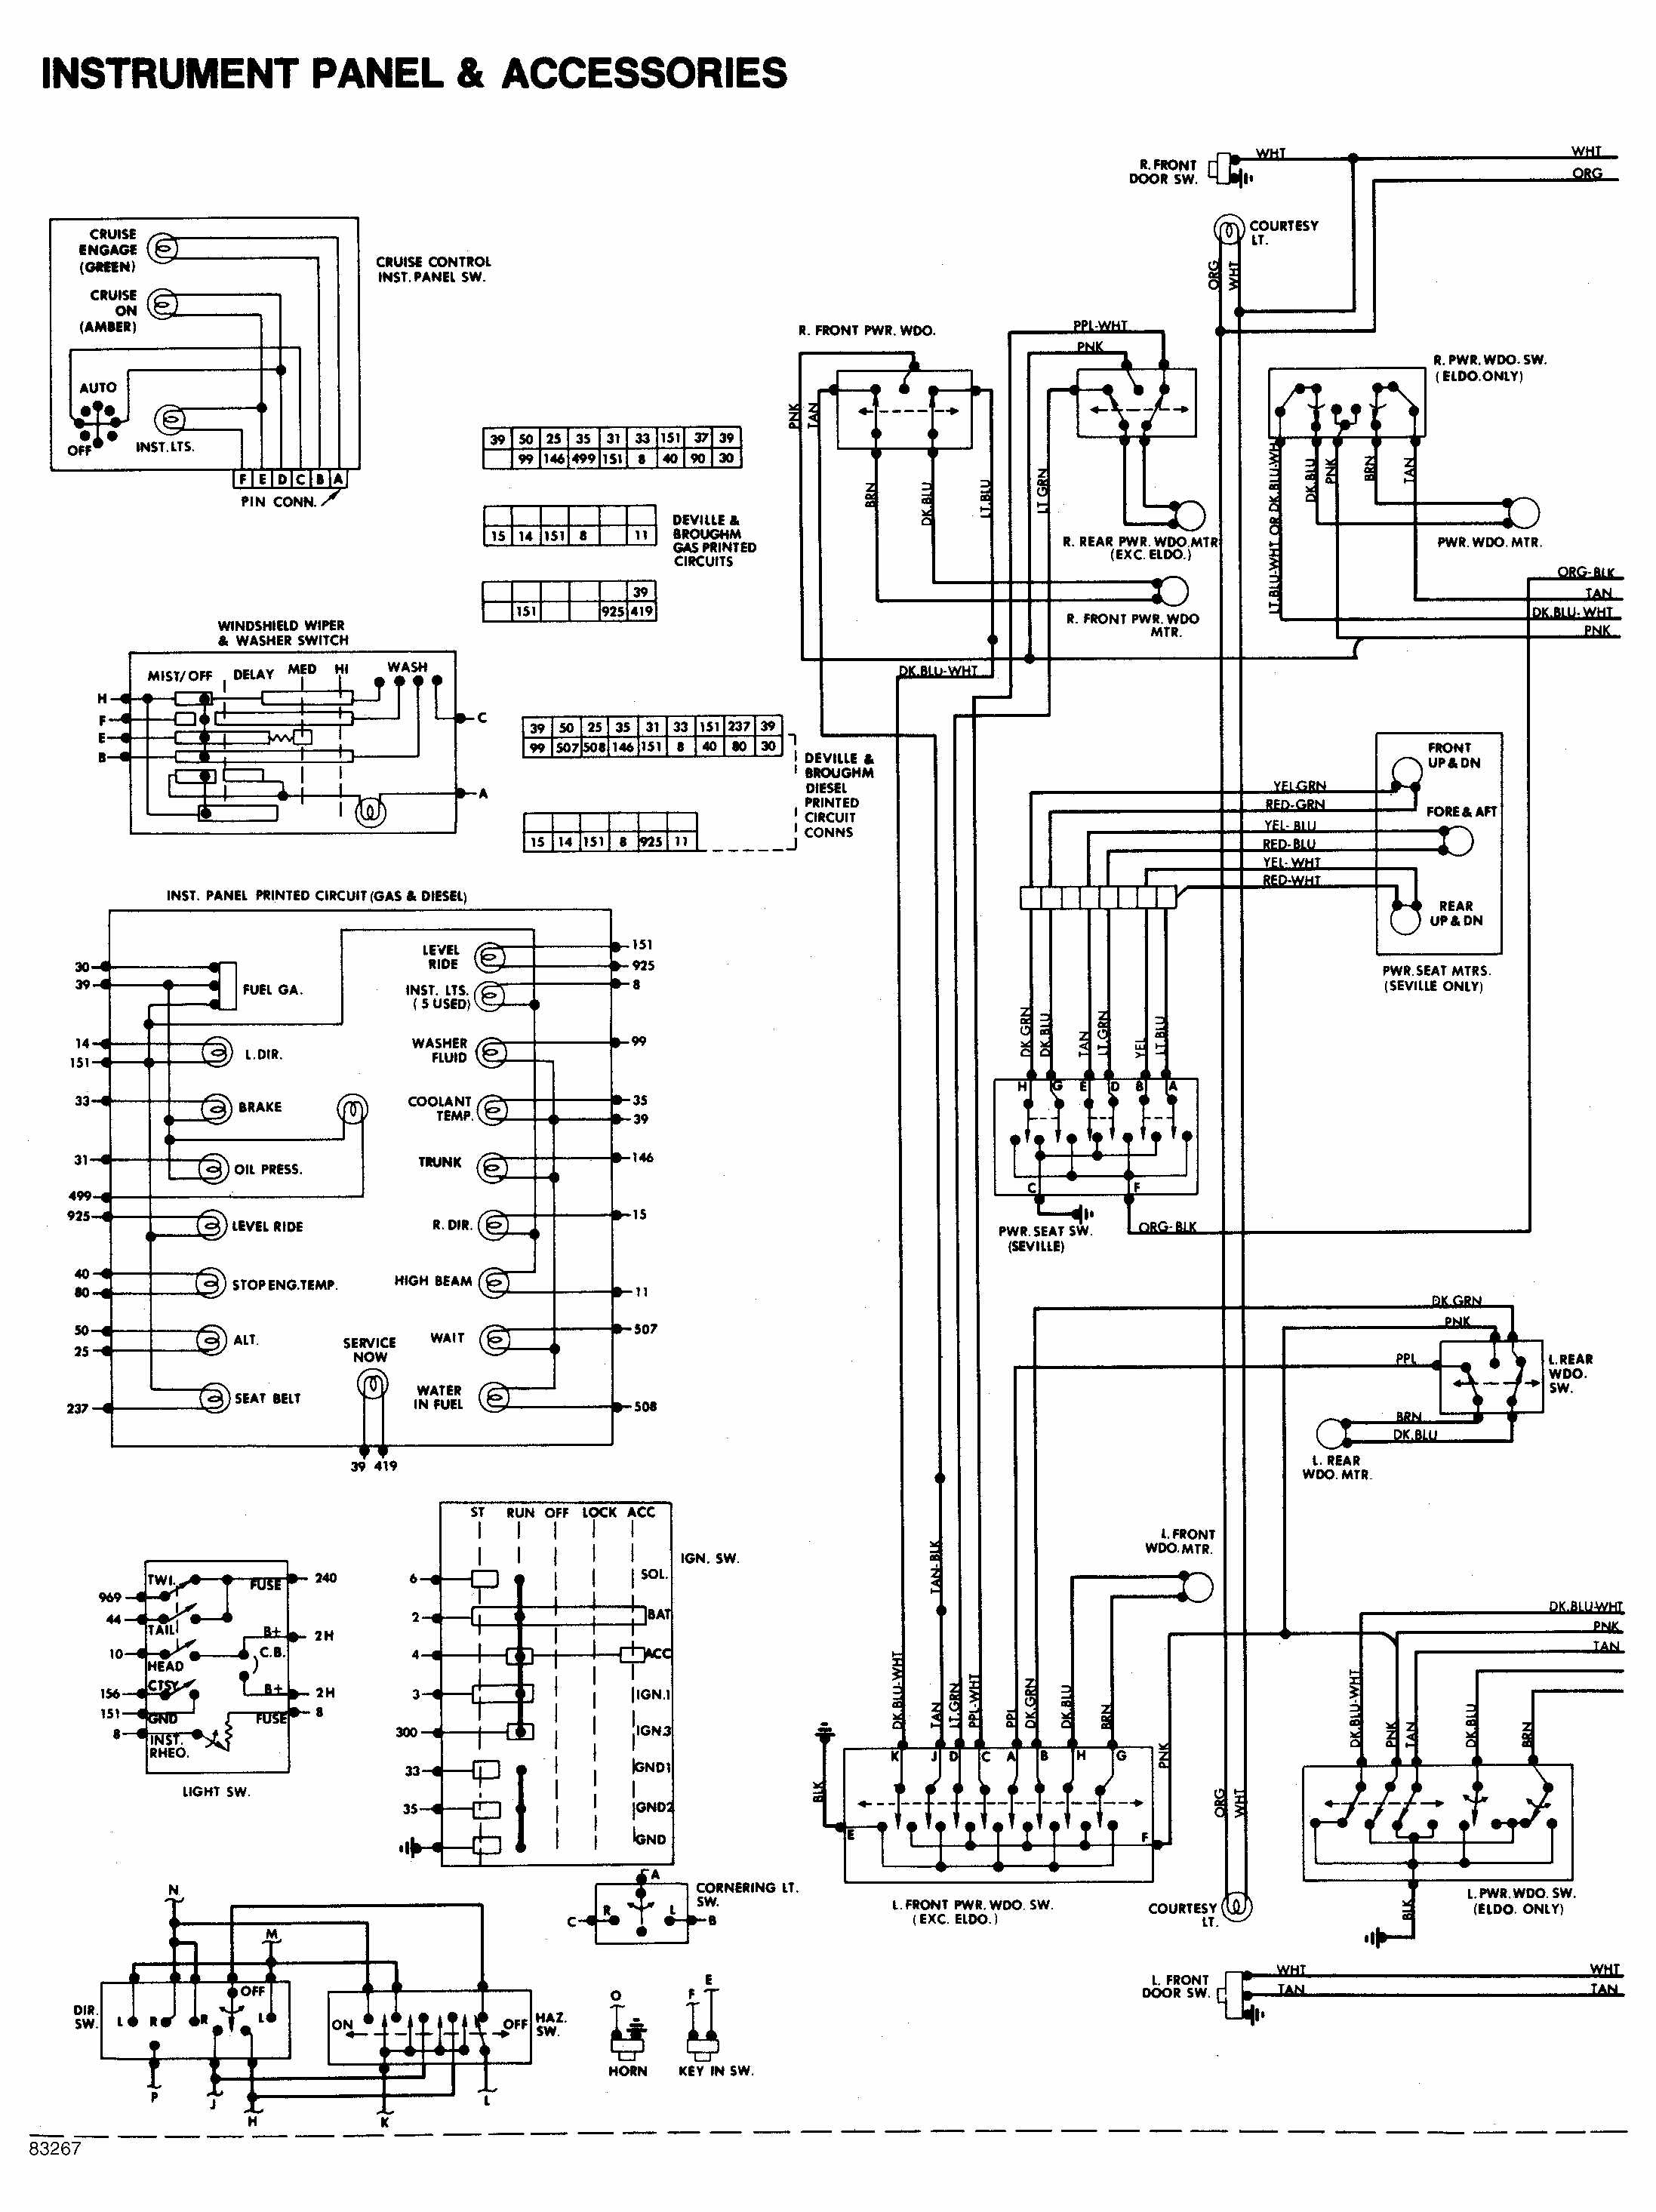 Bose Wiring Diagram 2004 Silverado Auto Electrical 77 Ford F250 Chevy Diagrams